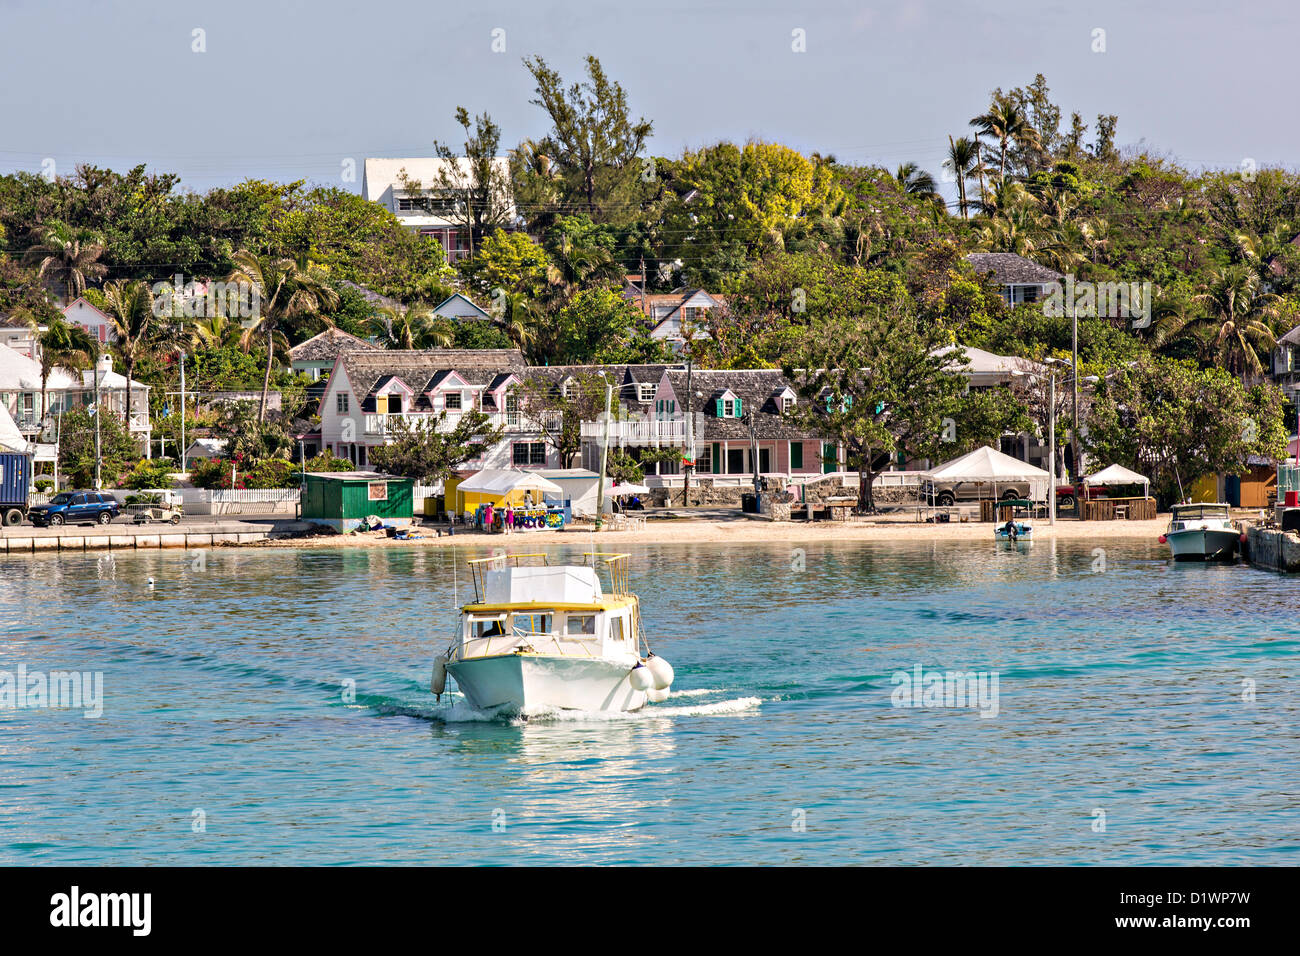 Dunmore Town, Harbour Island, The Bahamas. - Stock Image